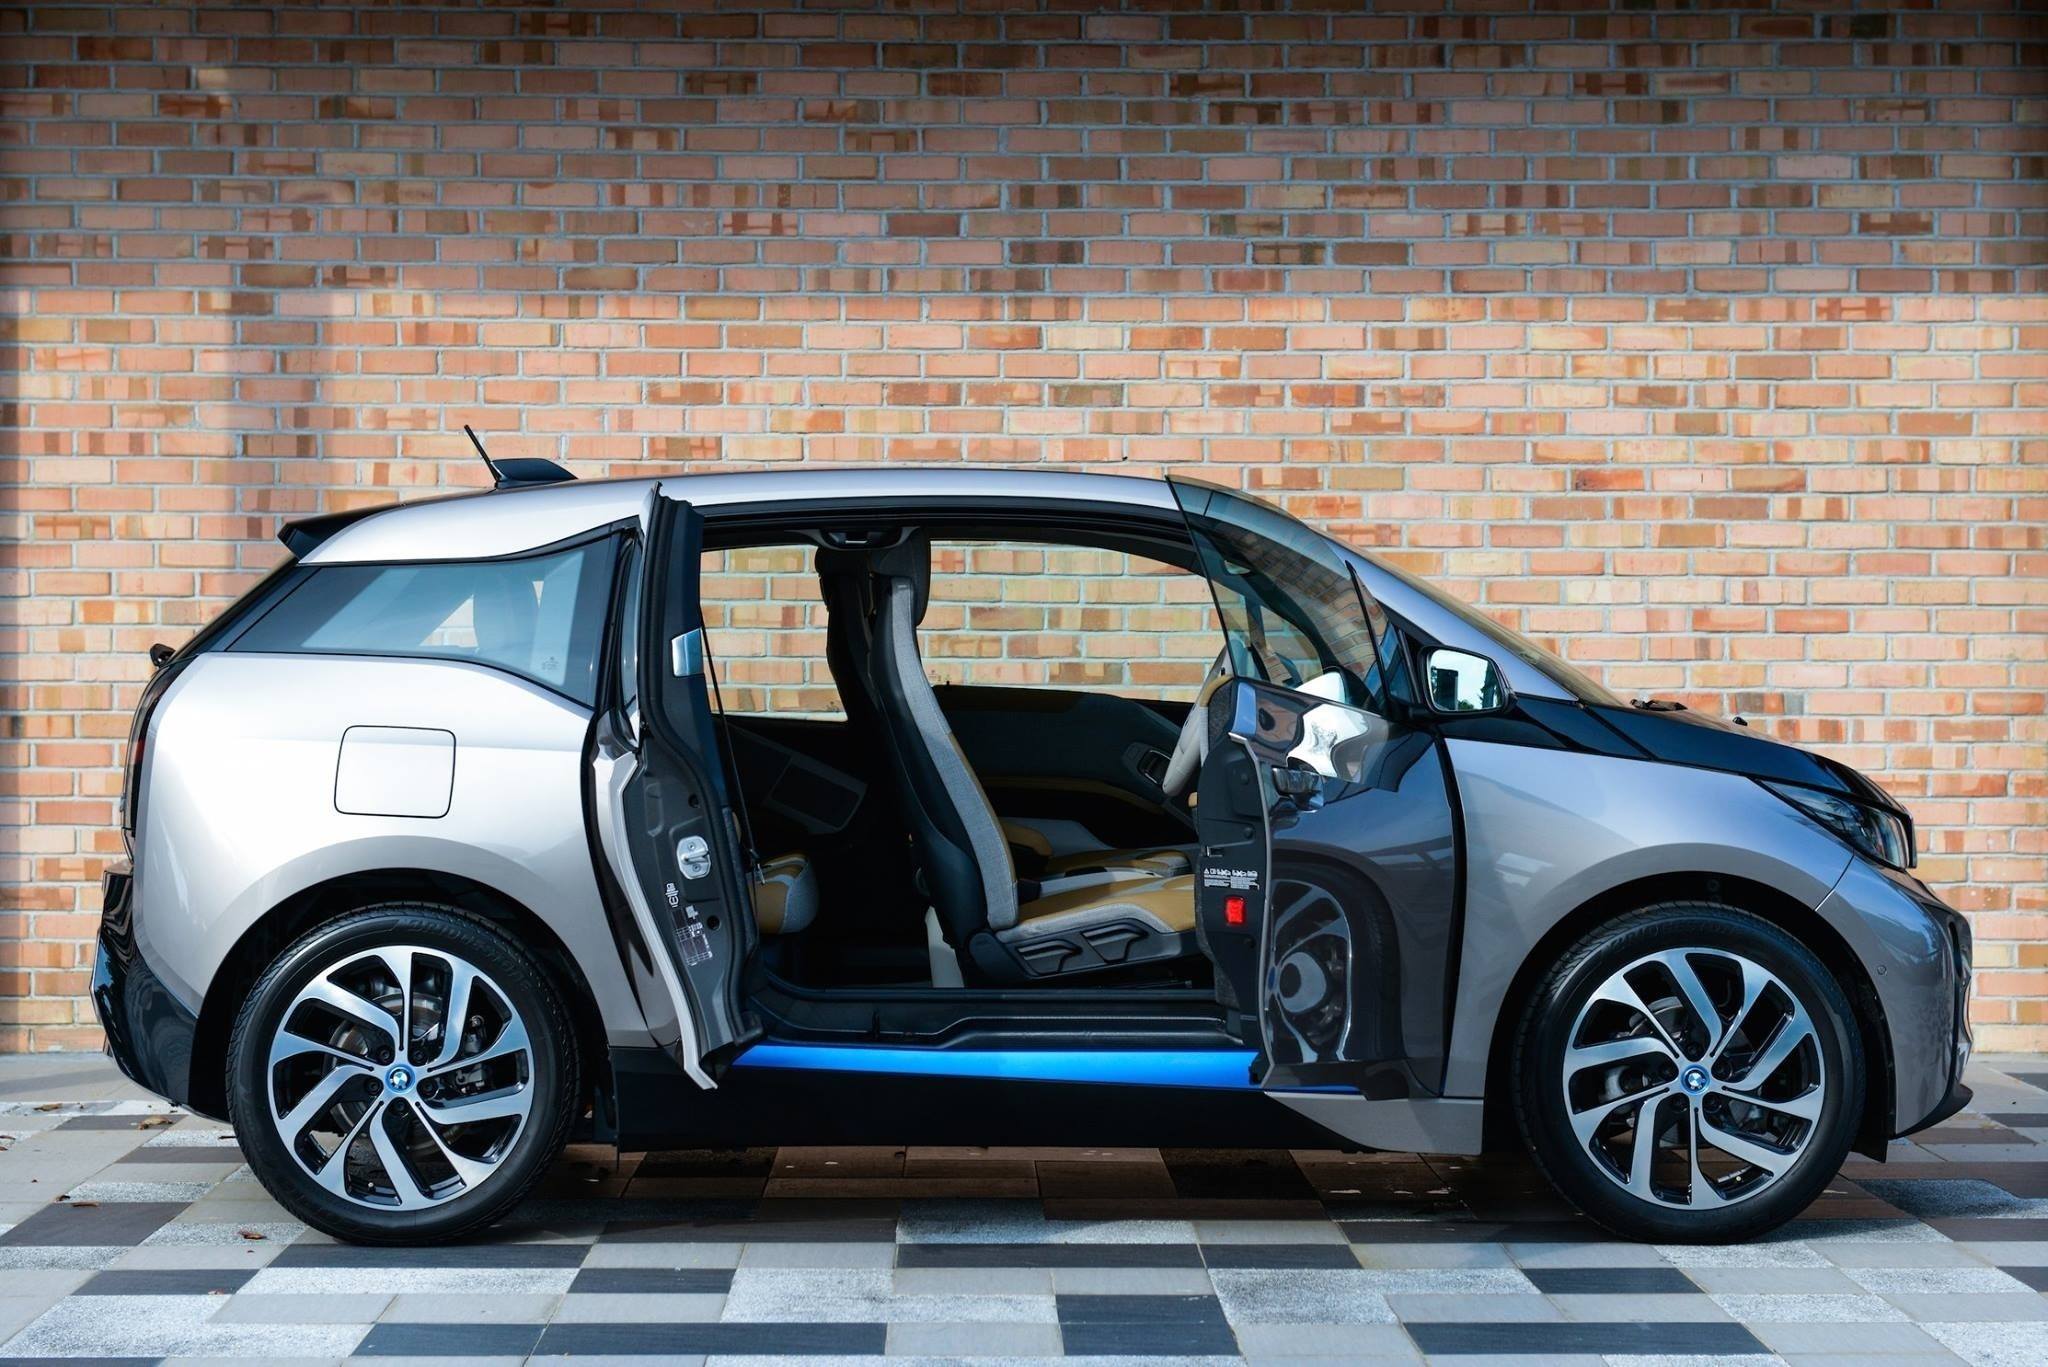 Report: Apple in negotiations to use BMW i3 as basis for its own electric car